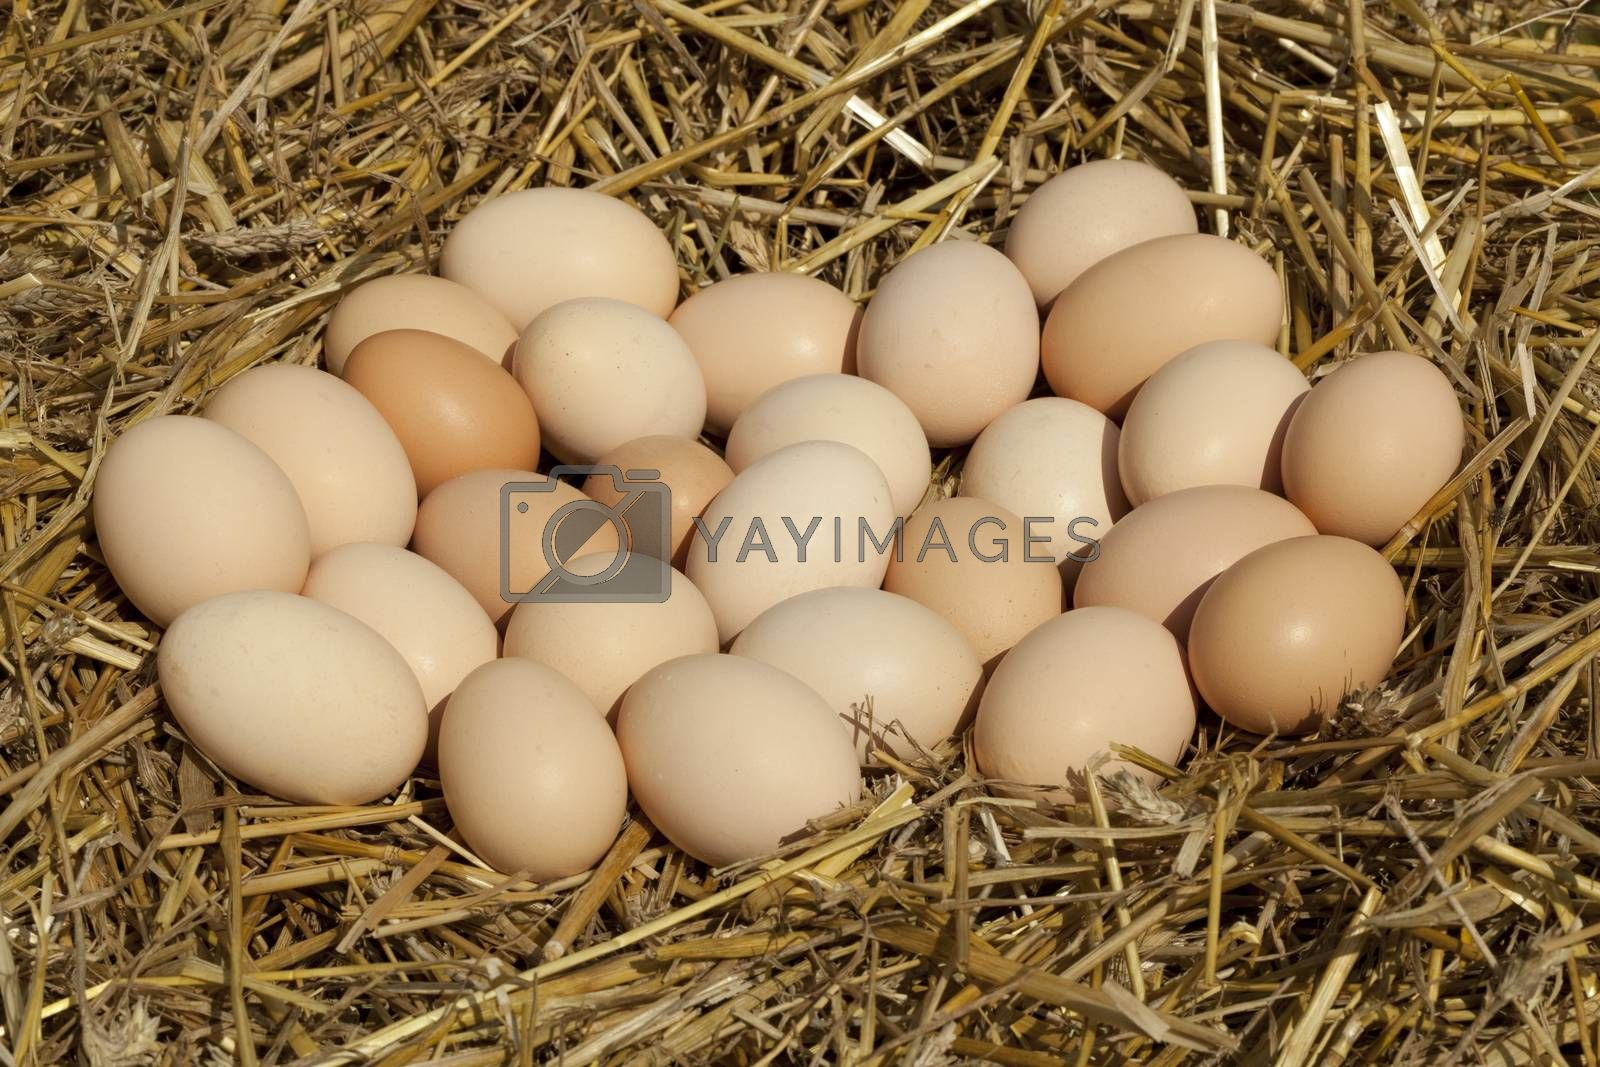 a lot of quantity of eggs country on straw